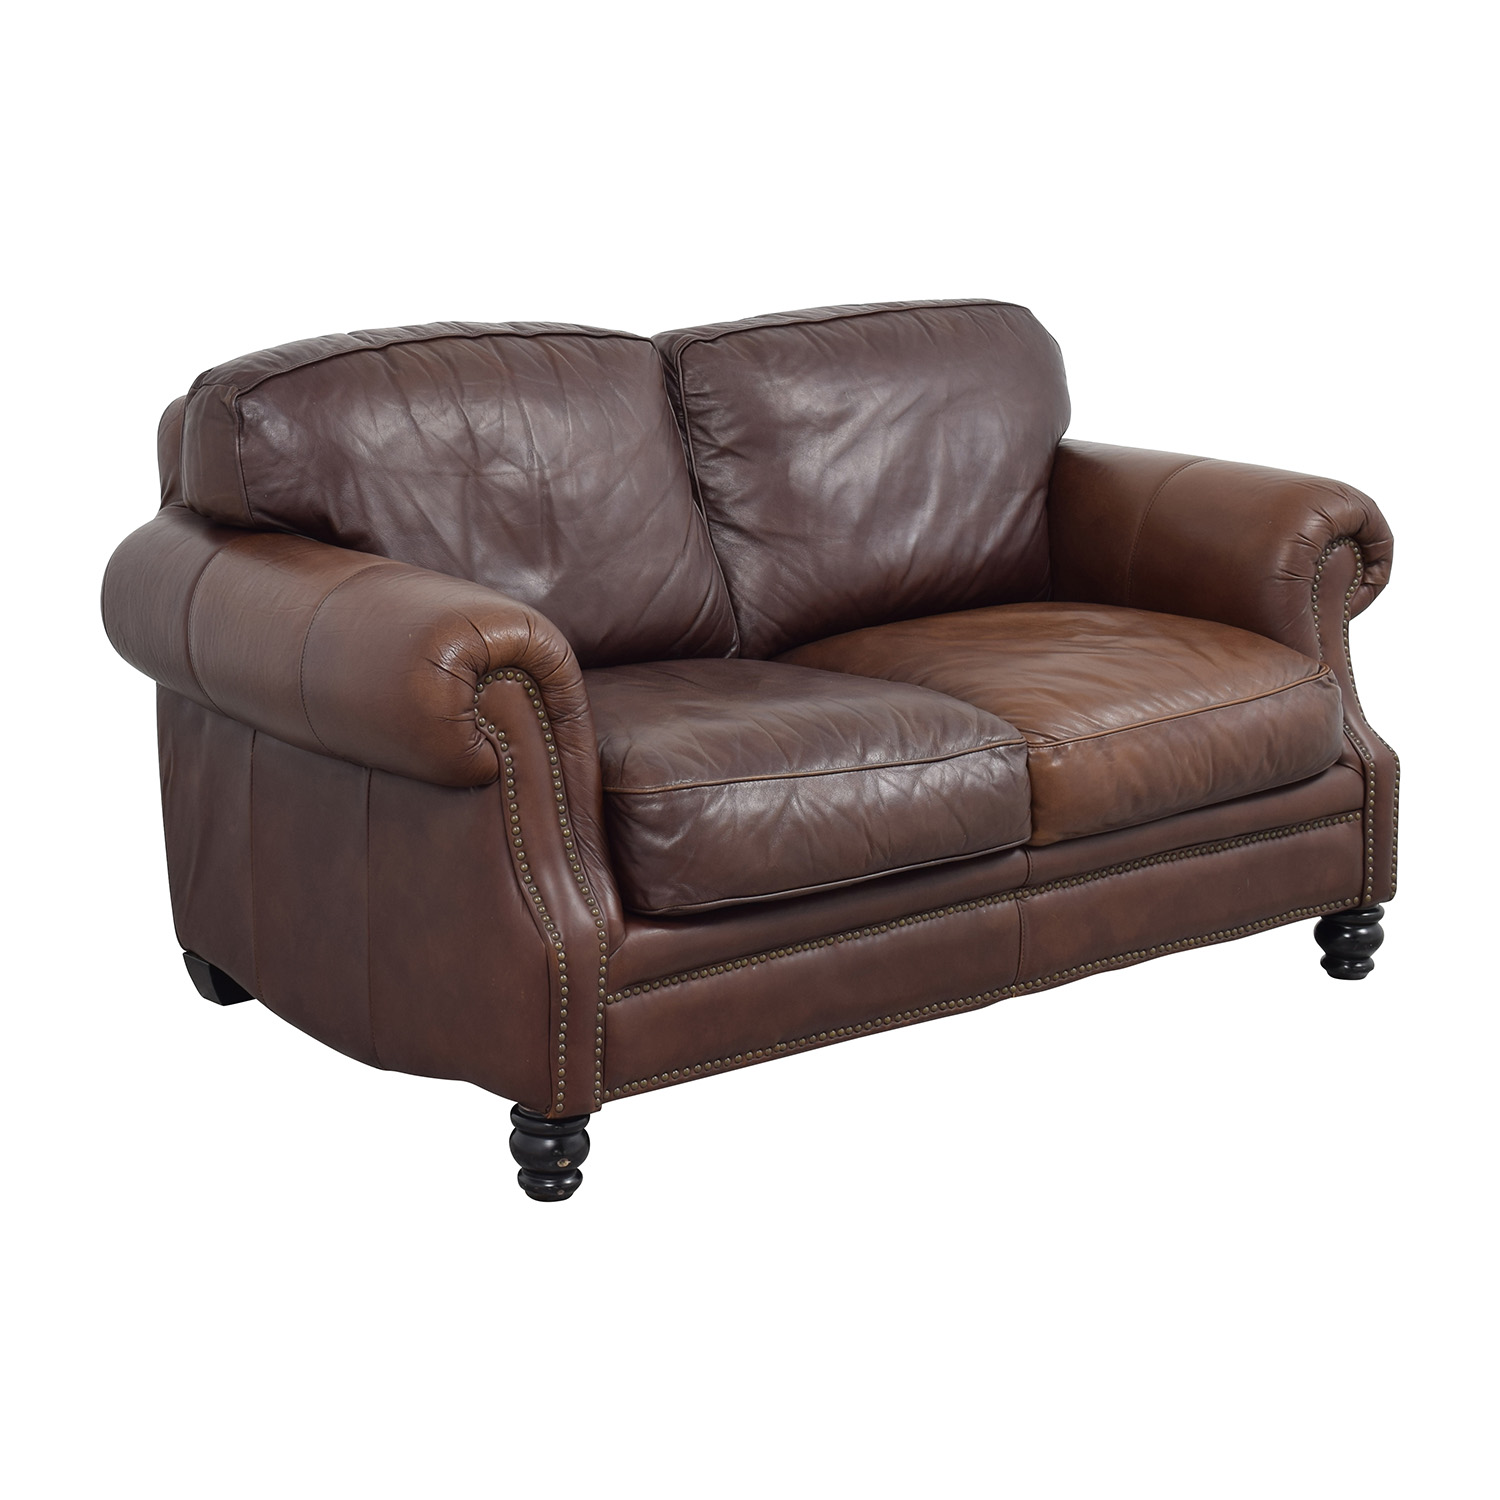 68 off brown leather studded loveseat sofas for Brown leather couch with studs